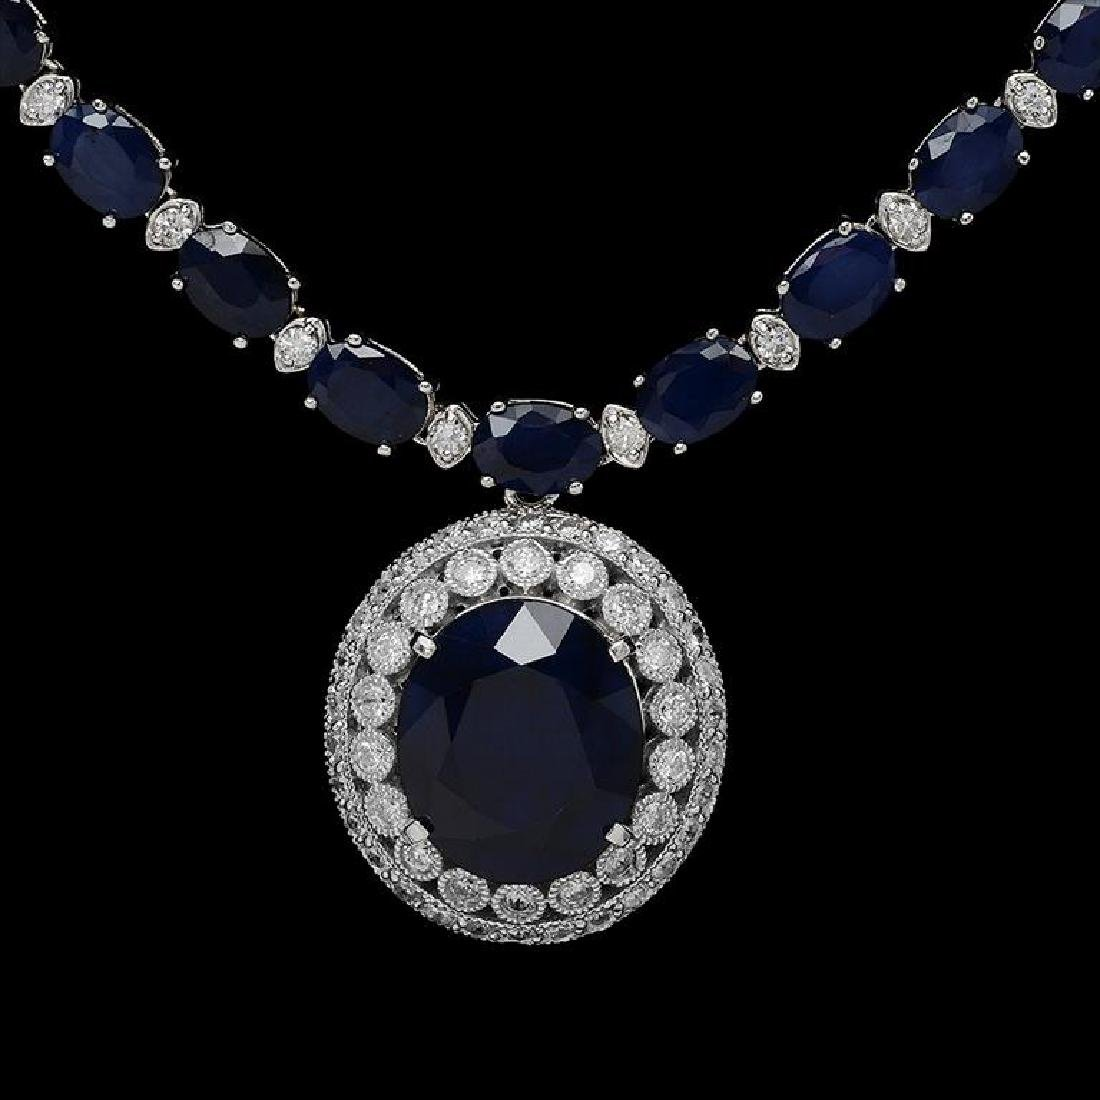 14K Gold 50.77 ct Sapphire & 3.27 ct Diamond Necklace - 2